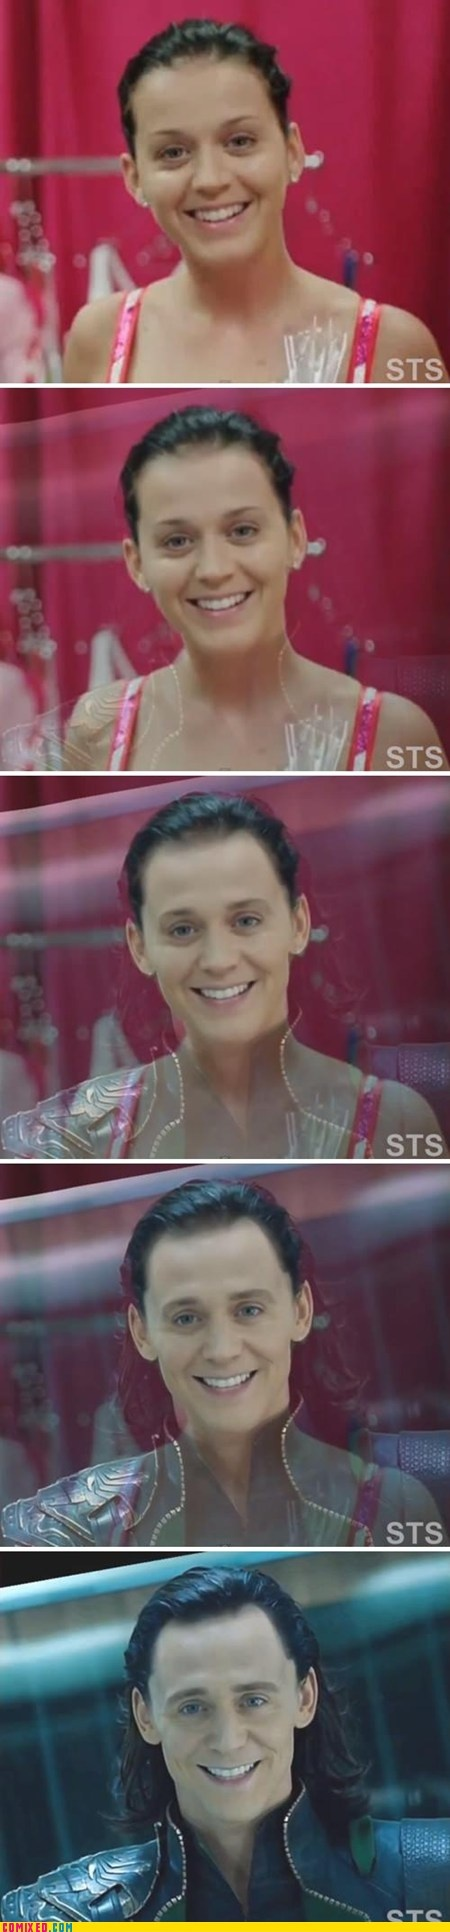 Katy Perry transforms into Loki o.O